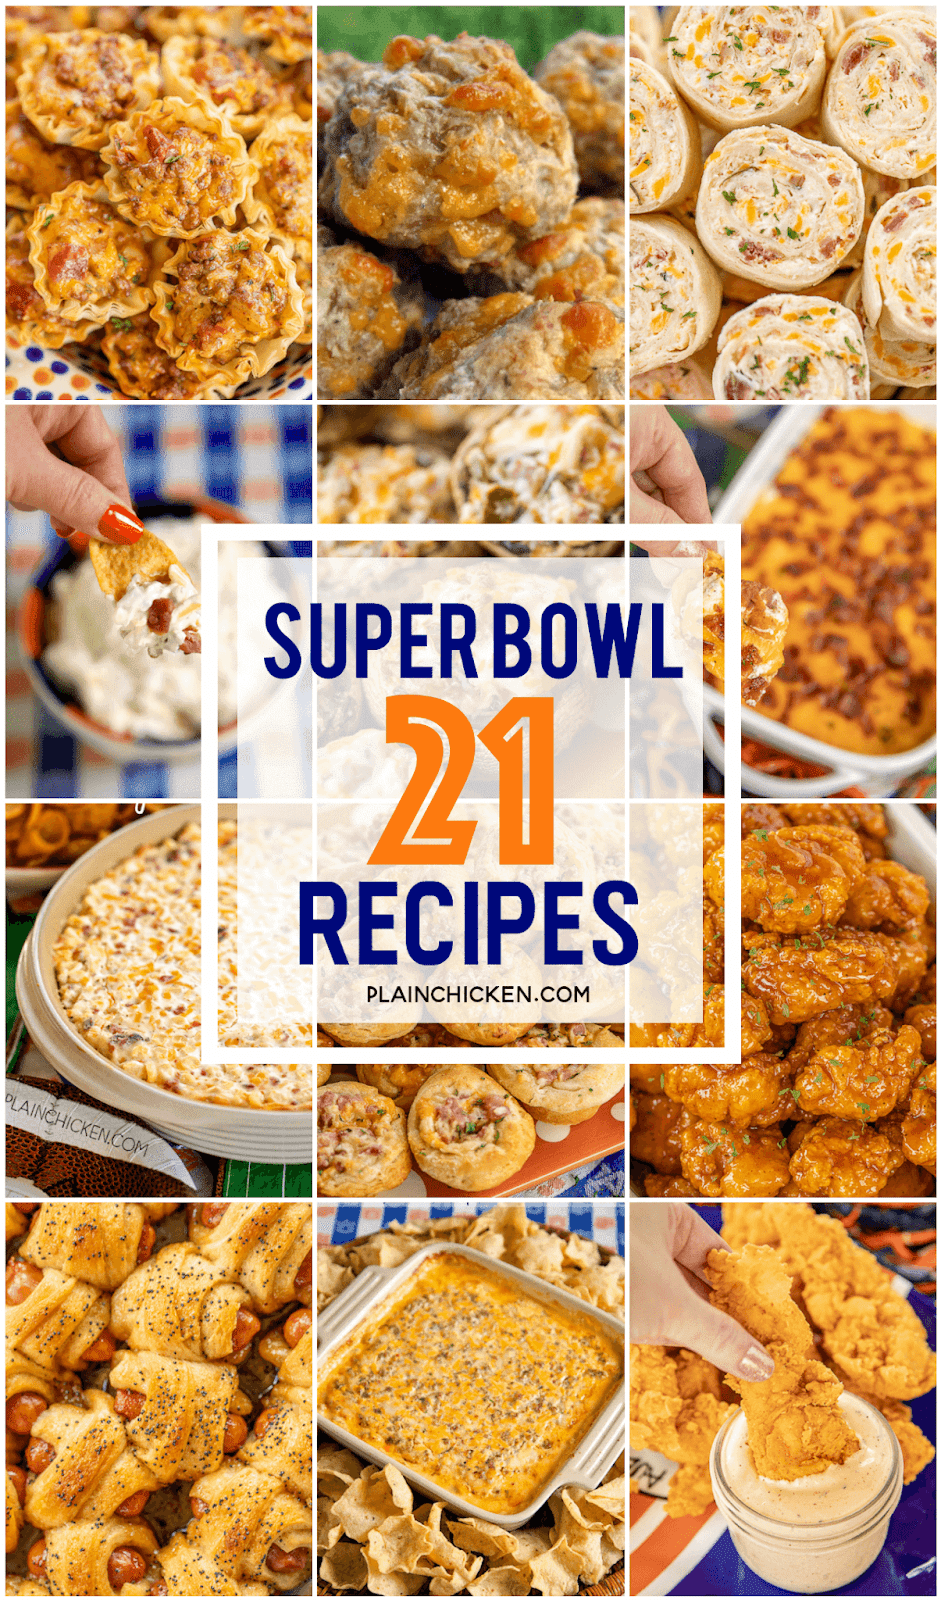 Easy Super Bowl Party Recipes - 21 easy party snacks for your Super Bowl party! Dips, finger foods, desserts - something for everyone! Can make most ahead of time and serve when ready for the big game! #tailgating #appetizer #partyfood